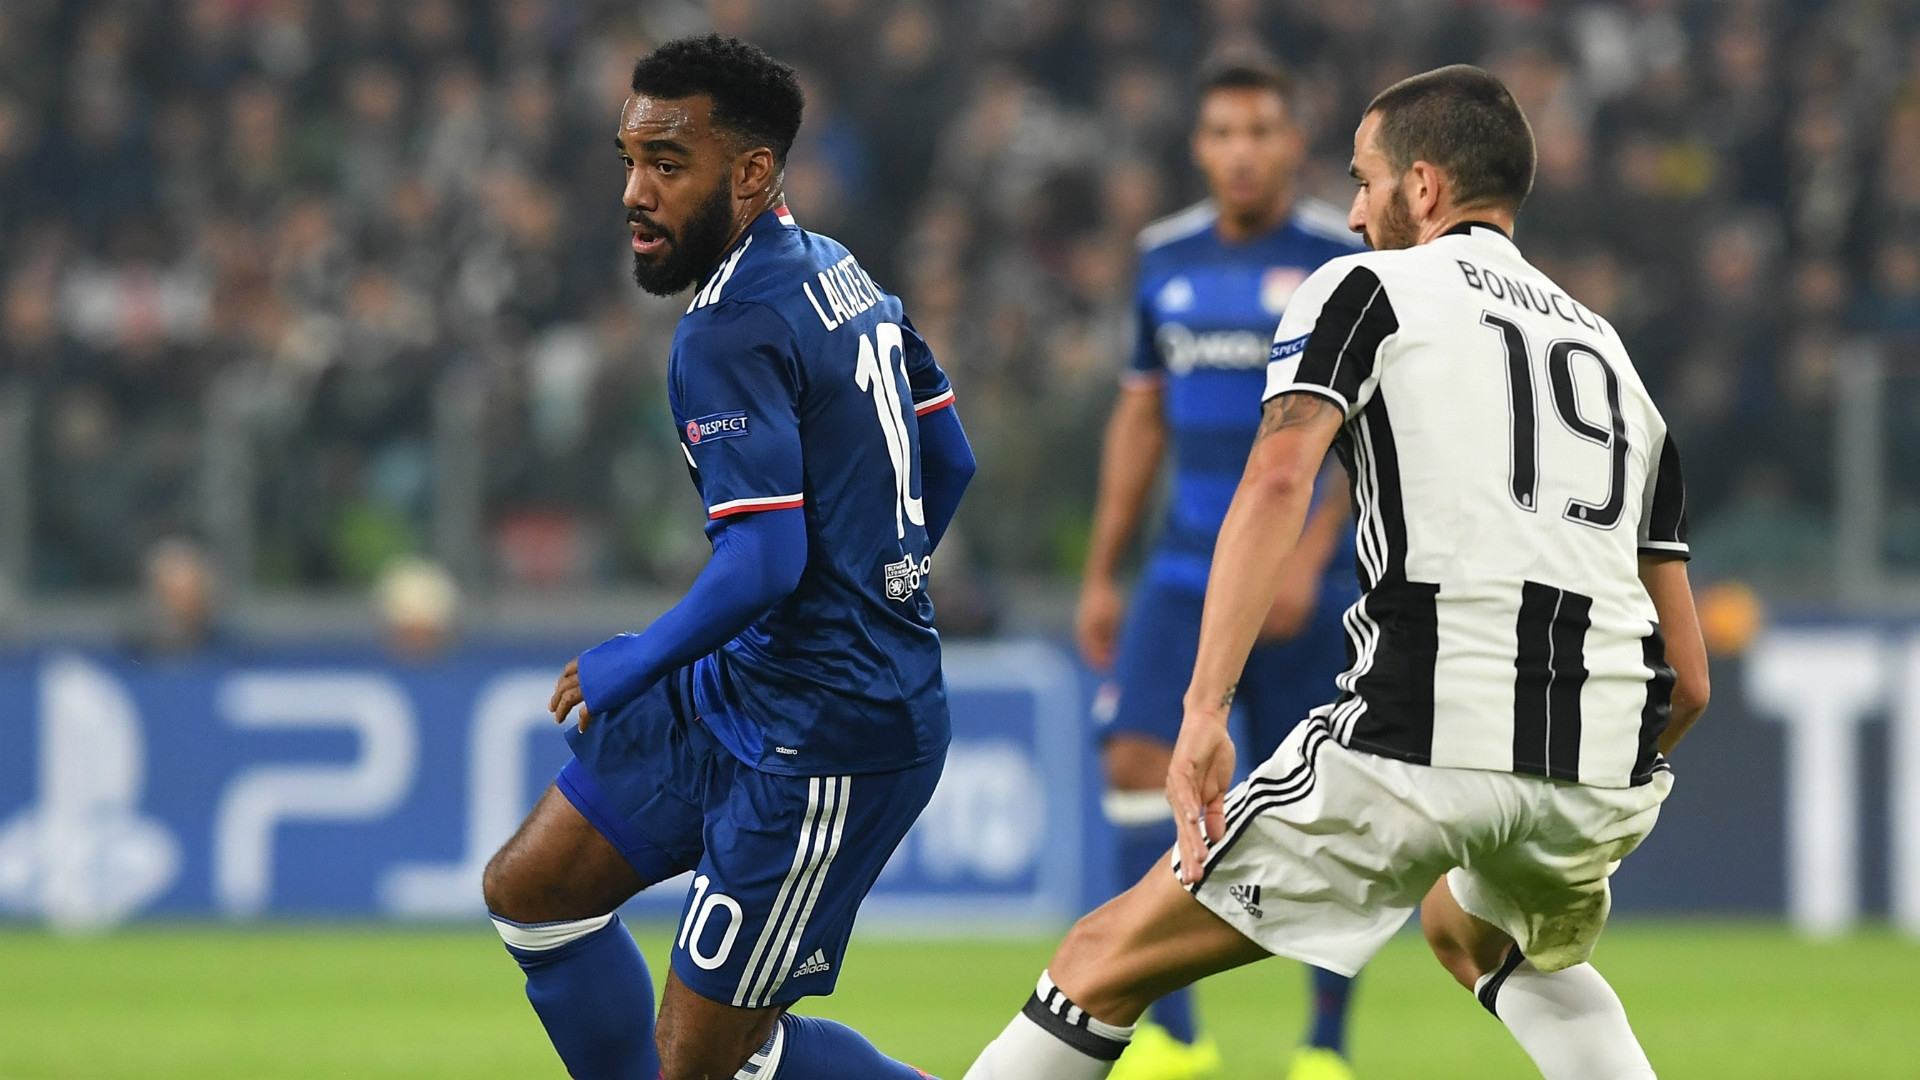 Bringing in Alexandre Lacazette from Monaco, after the player's best season there, is meant to show that Wenger is willing to make certain changes.